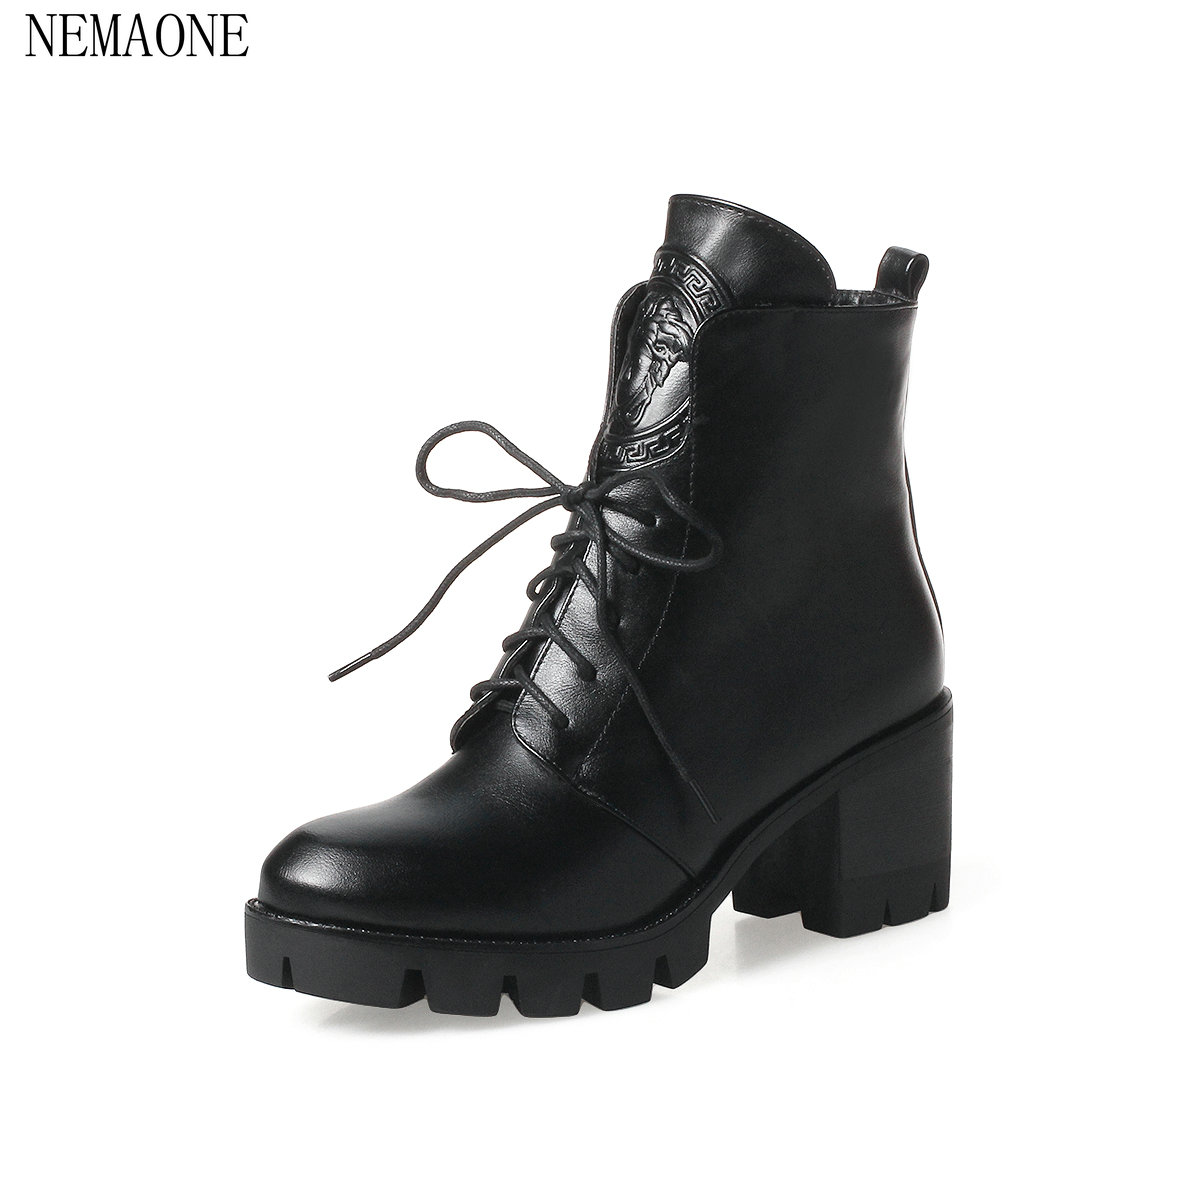 NEMAONE 2018 Women Ankle Boots Fashion Solid Black Square High Heel Round Toe Lace Up Western Style Women Boots Size 33-43<br>